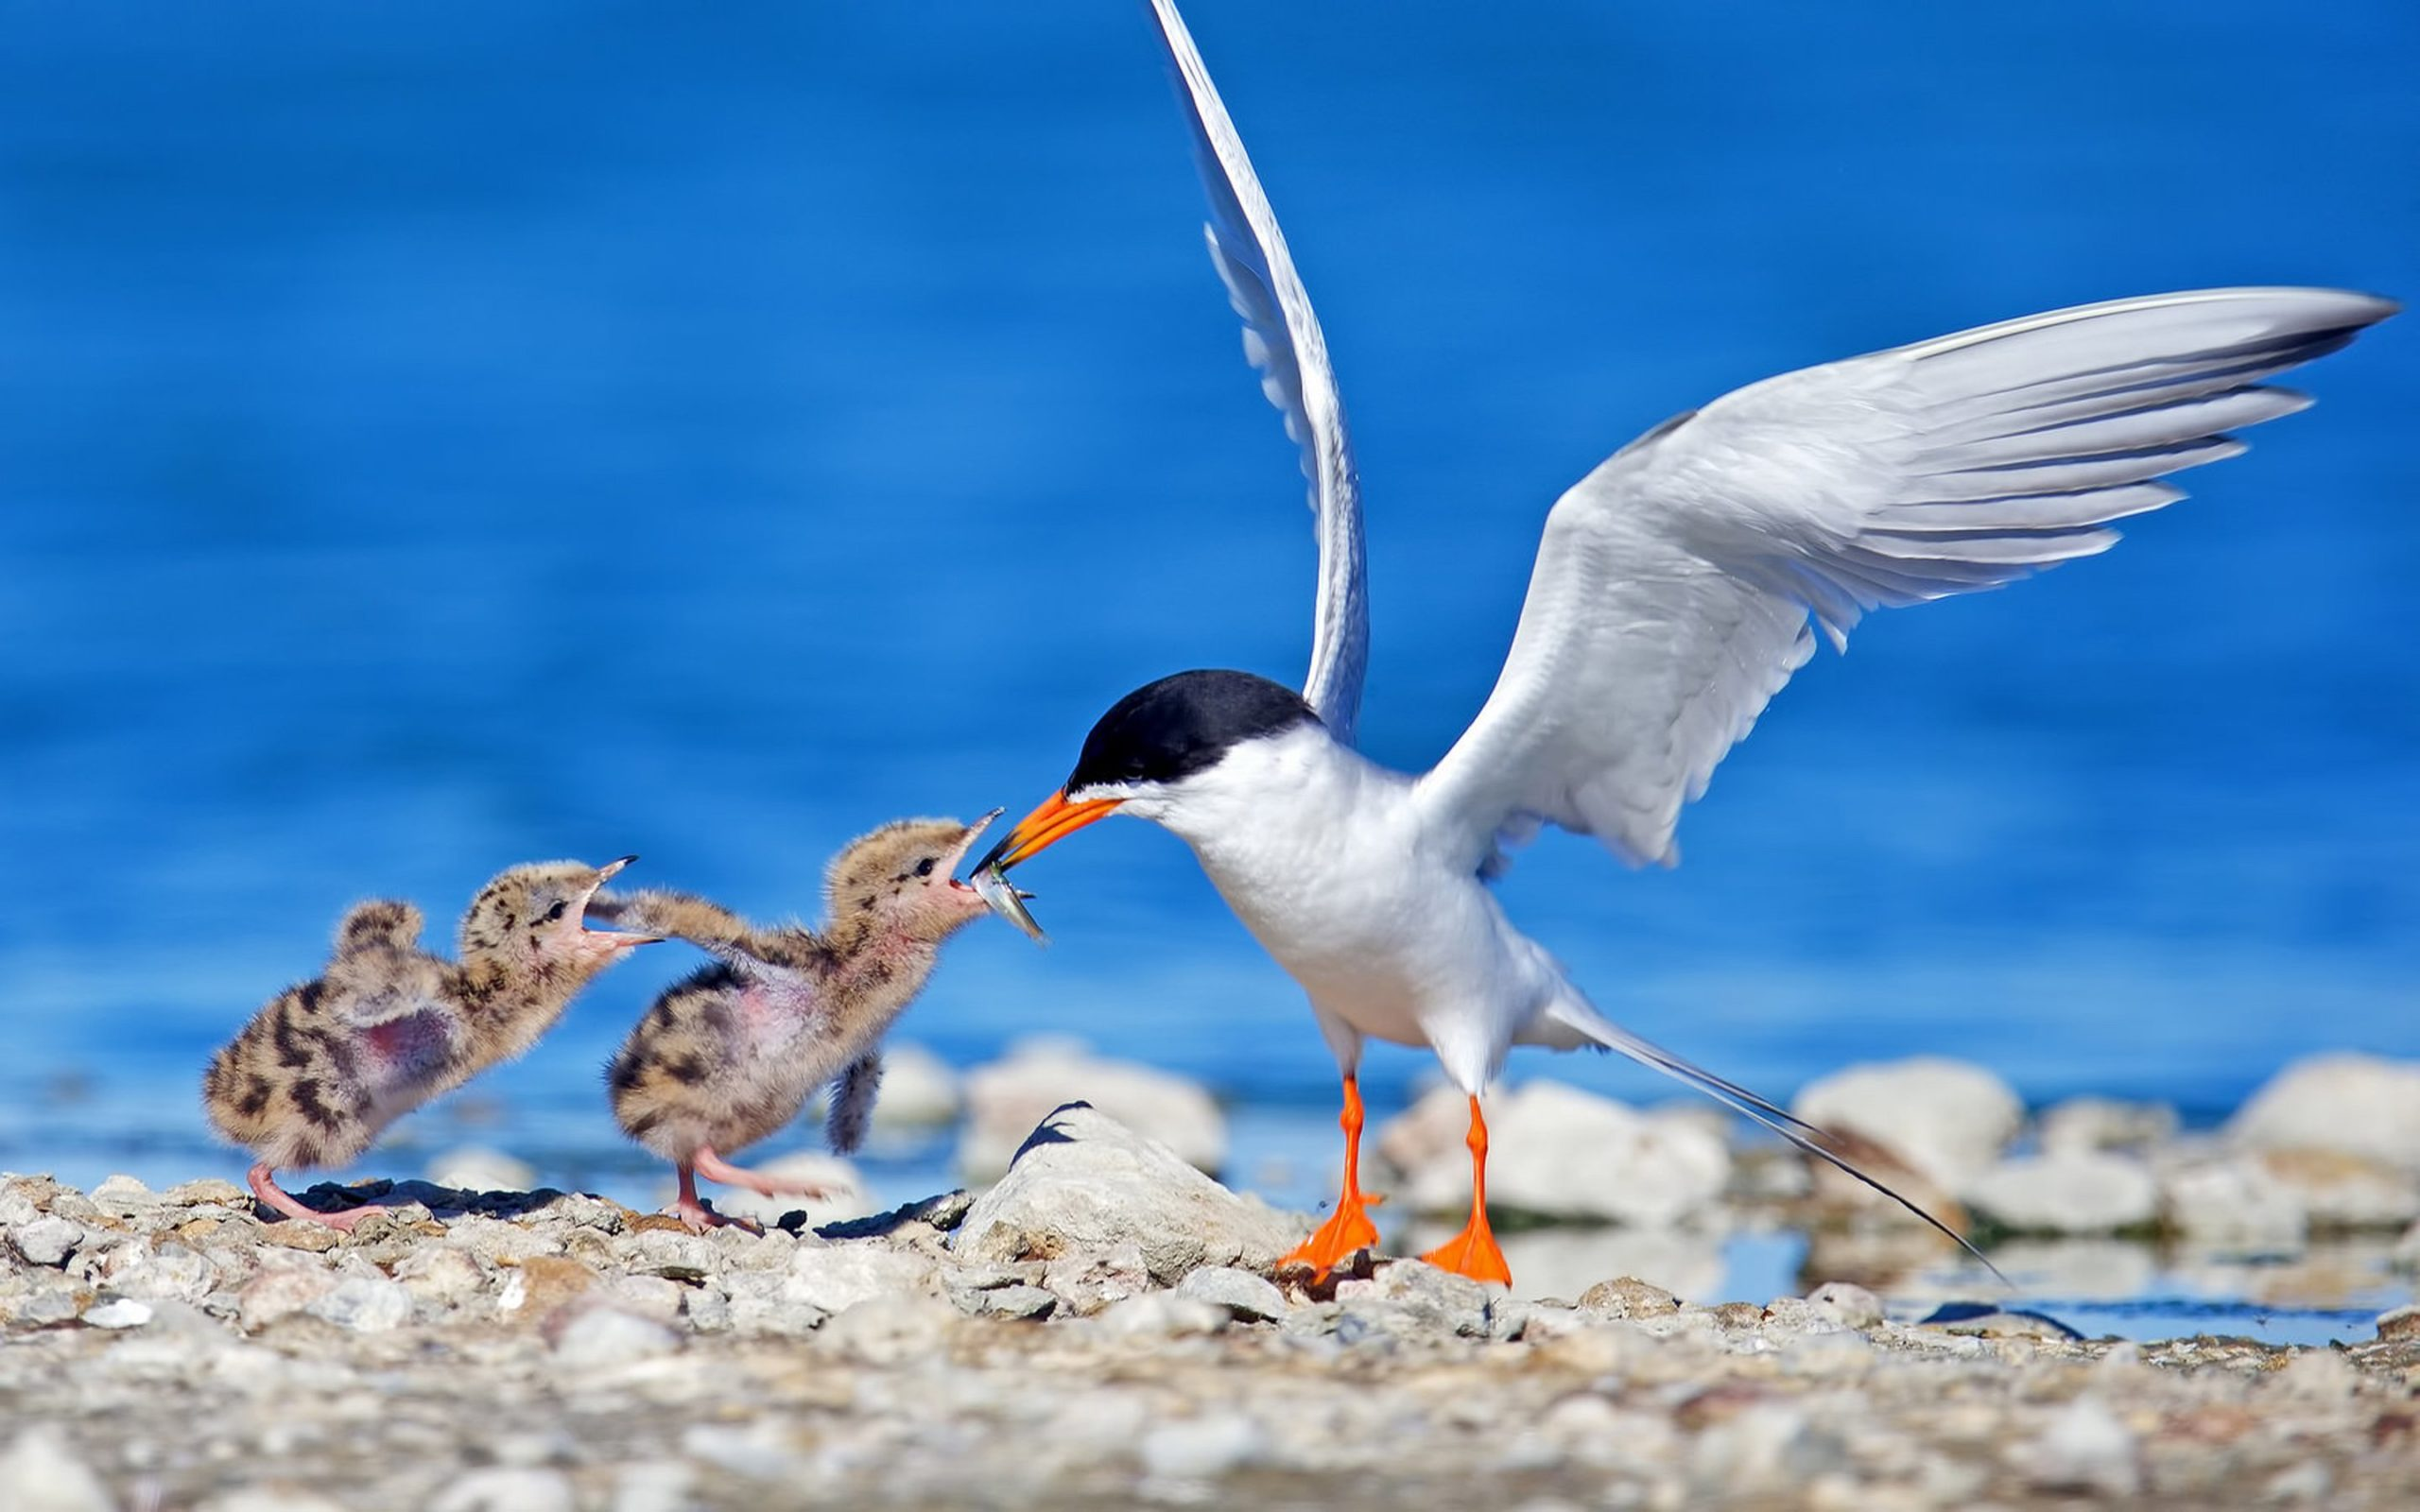 Sea-Gull-Bird-And-Two-Chicks-Wallpaper